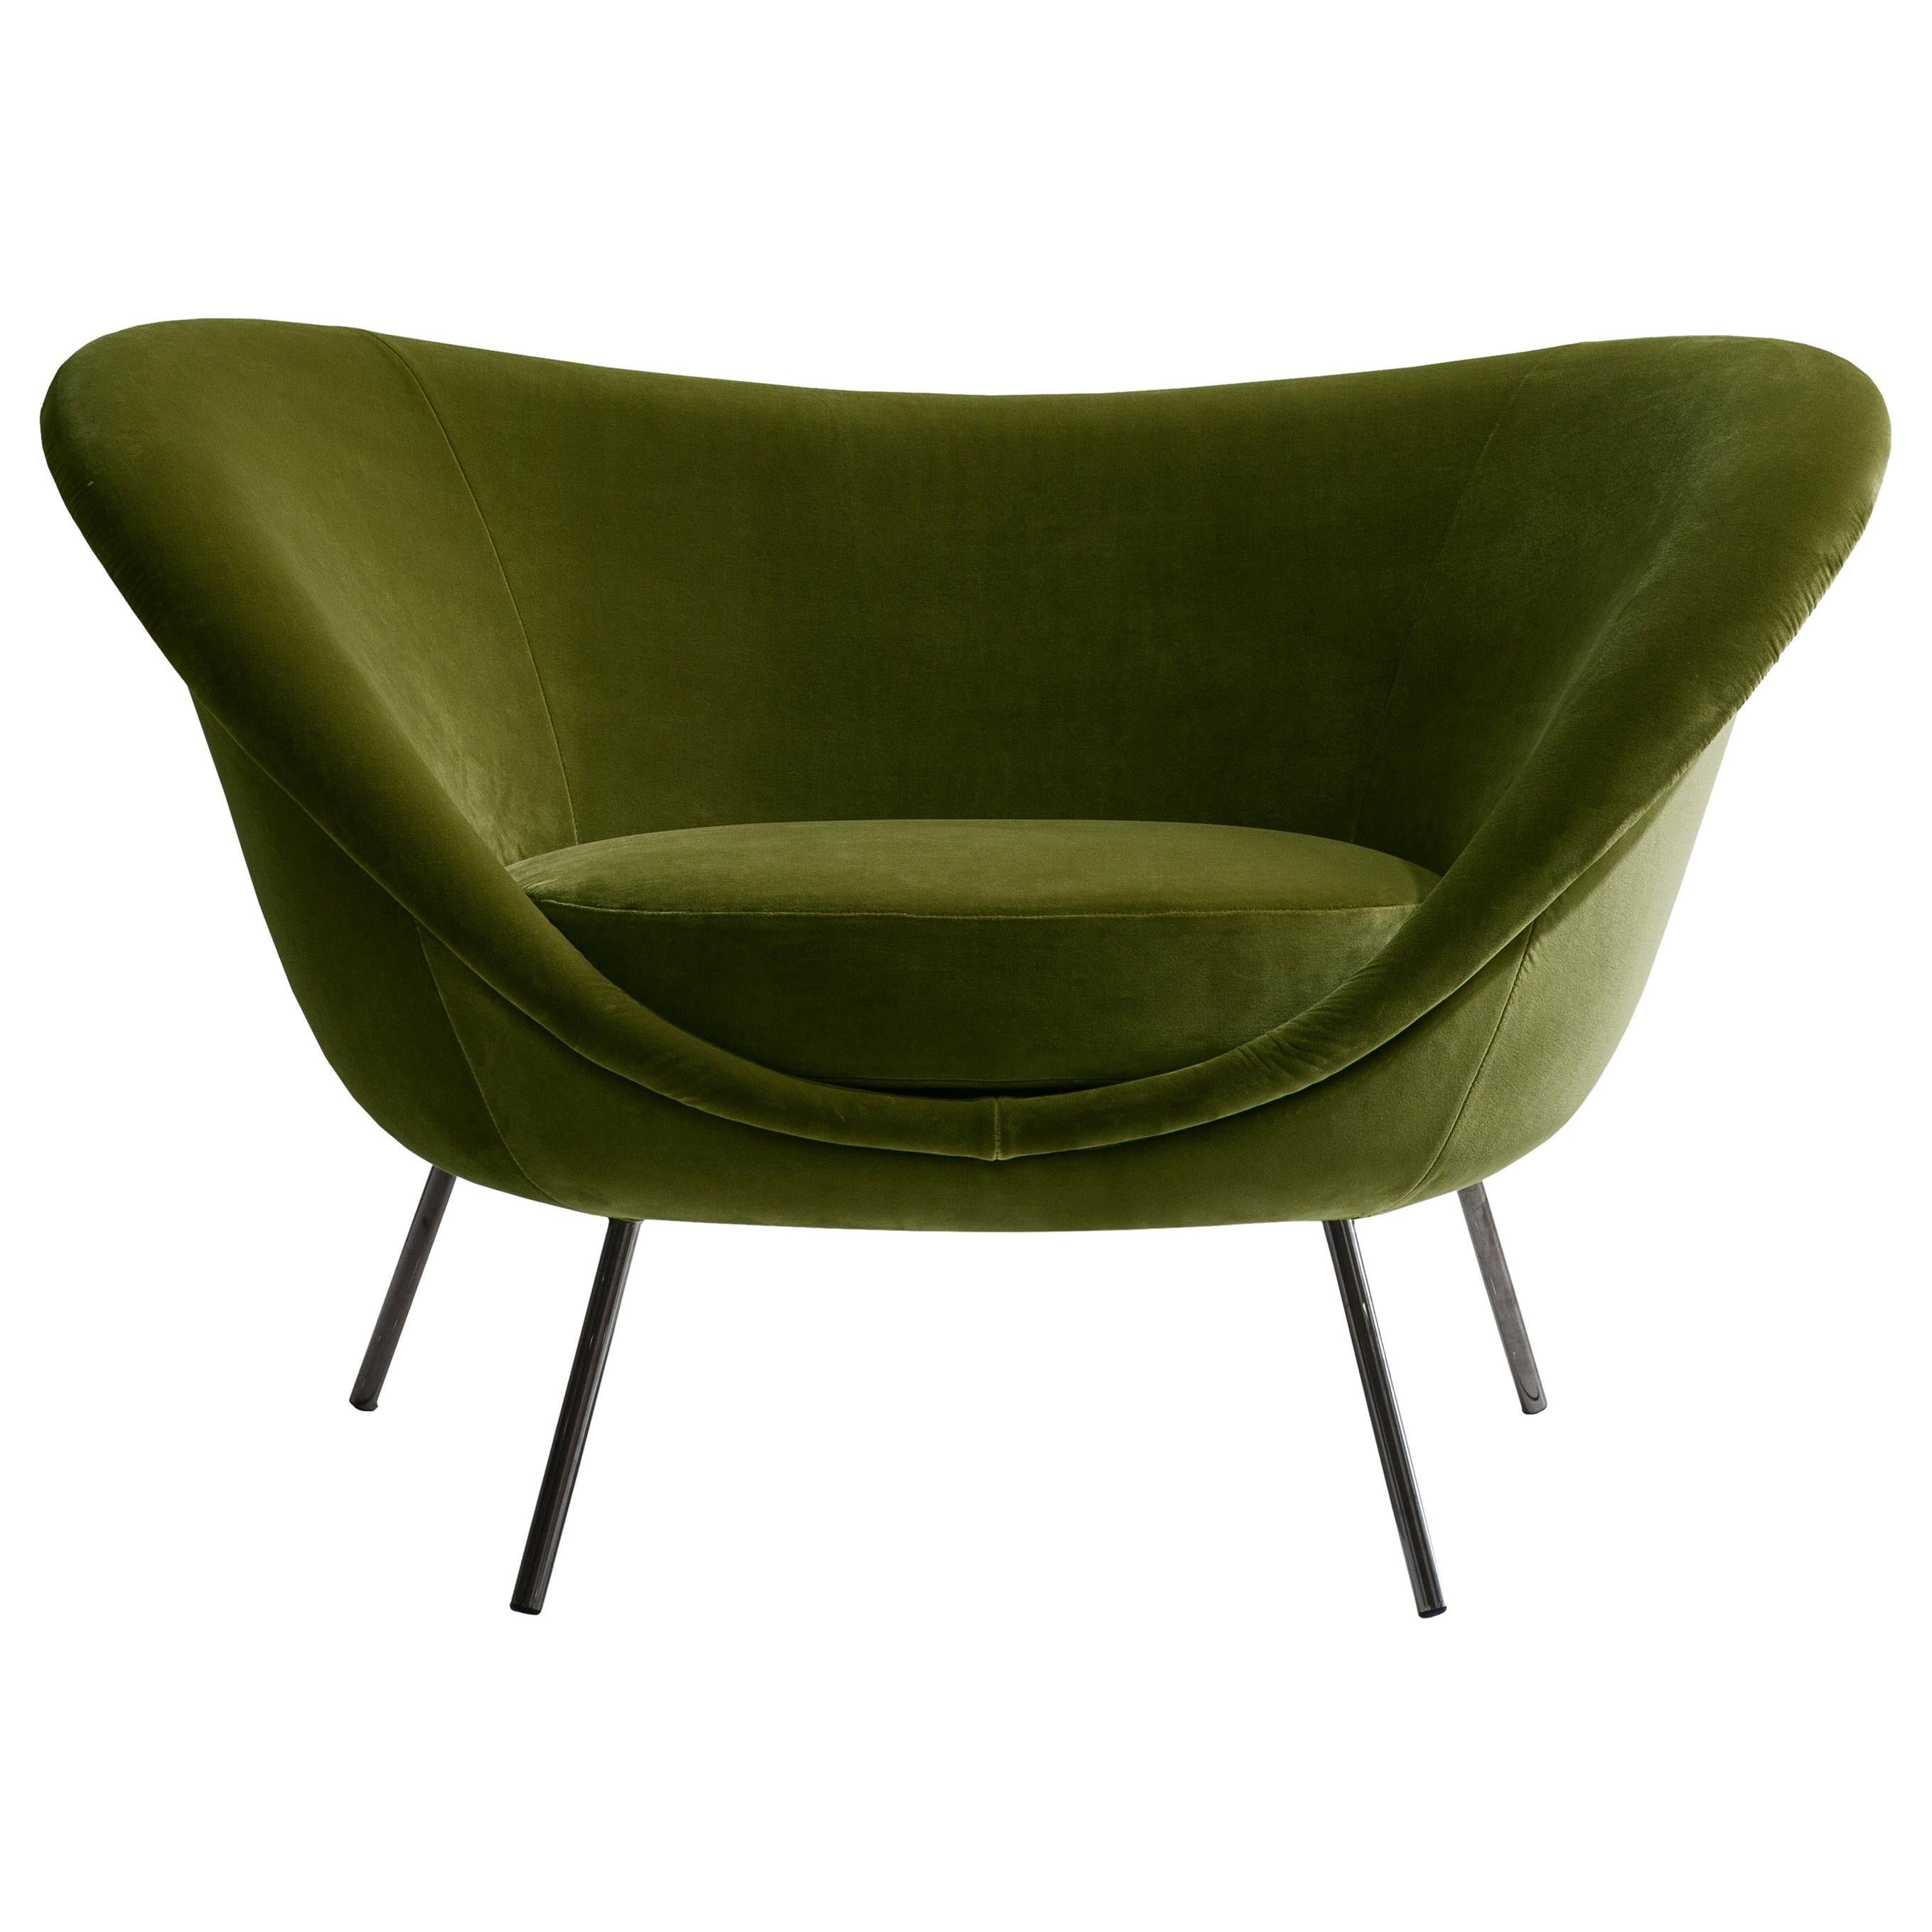 Molteni&C D.154.2 Armchair in Green Velvet by Gio Ponti